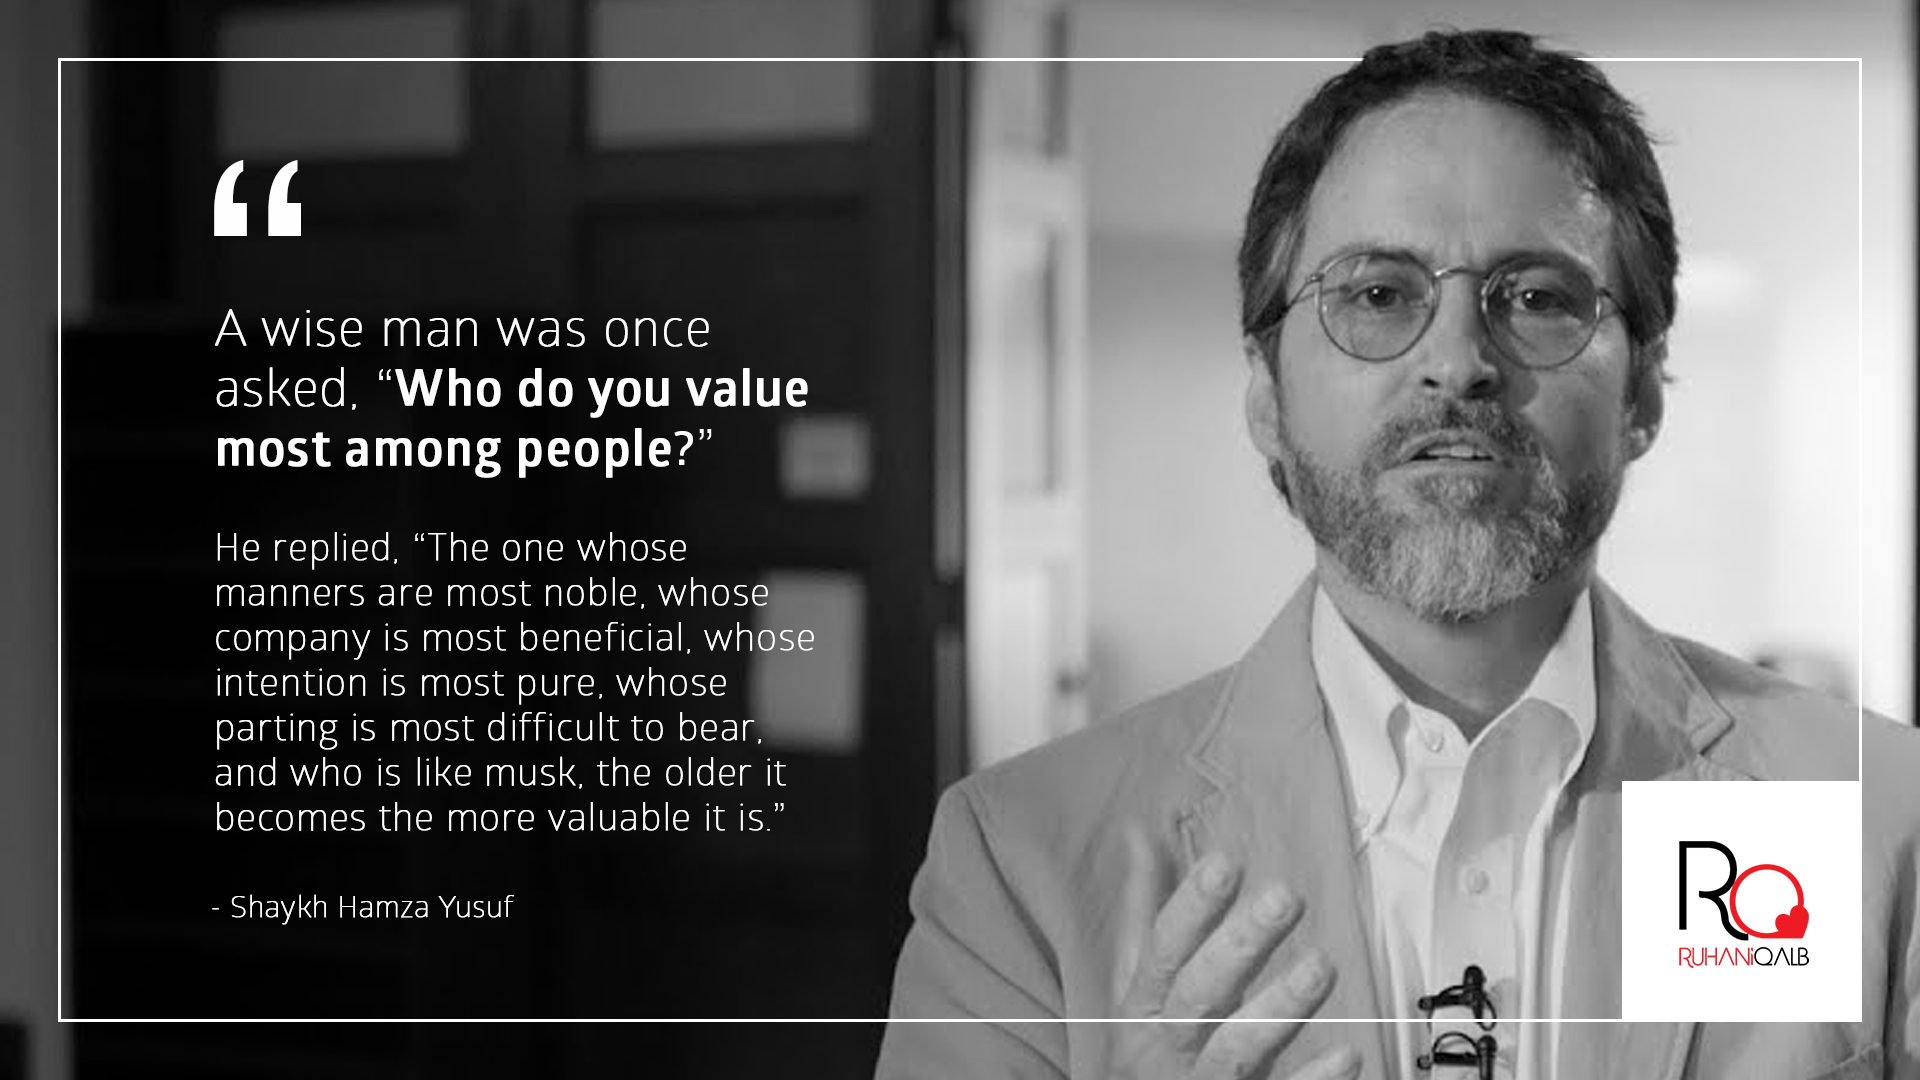 Who-Do-You-Value-Most-Among-People